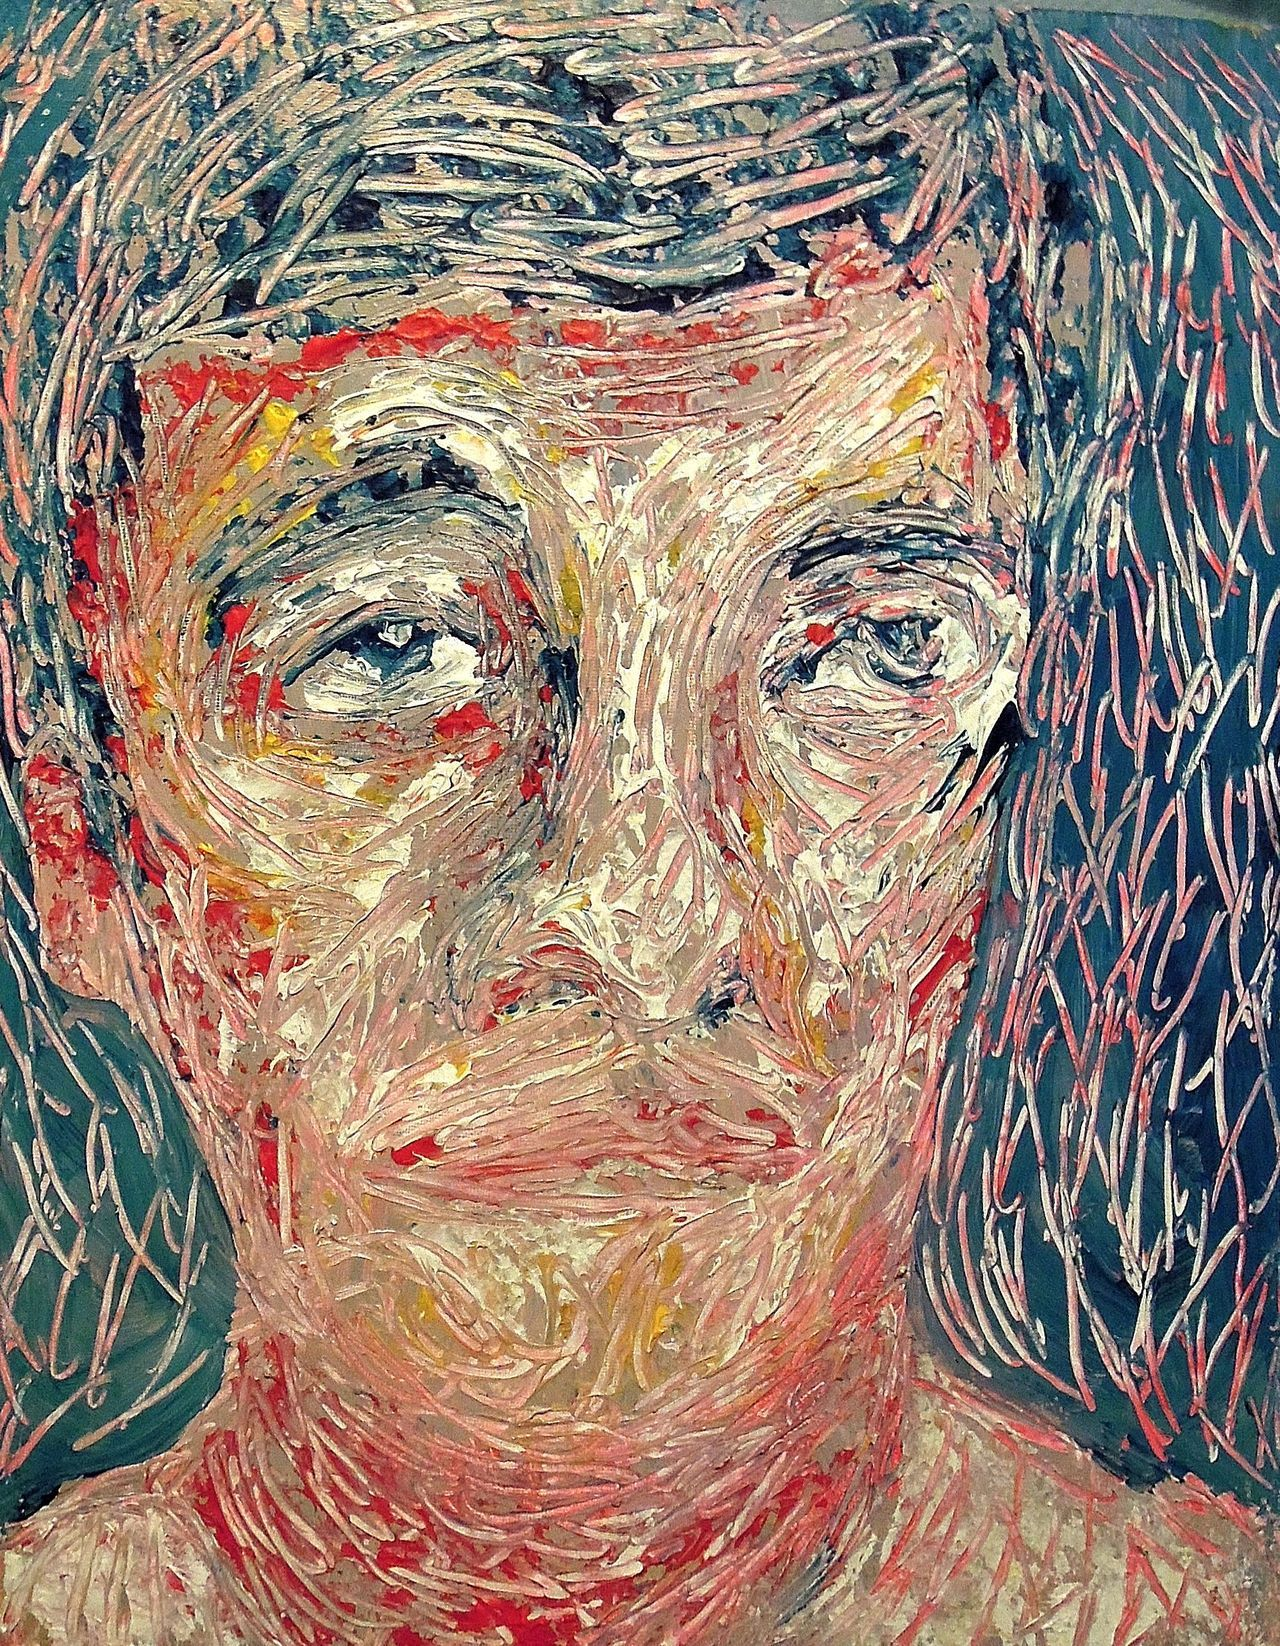 Self Portrait Acrylic on canvas2012